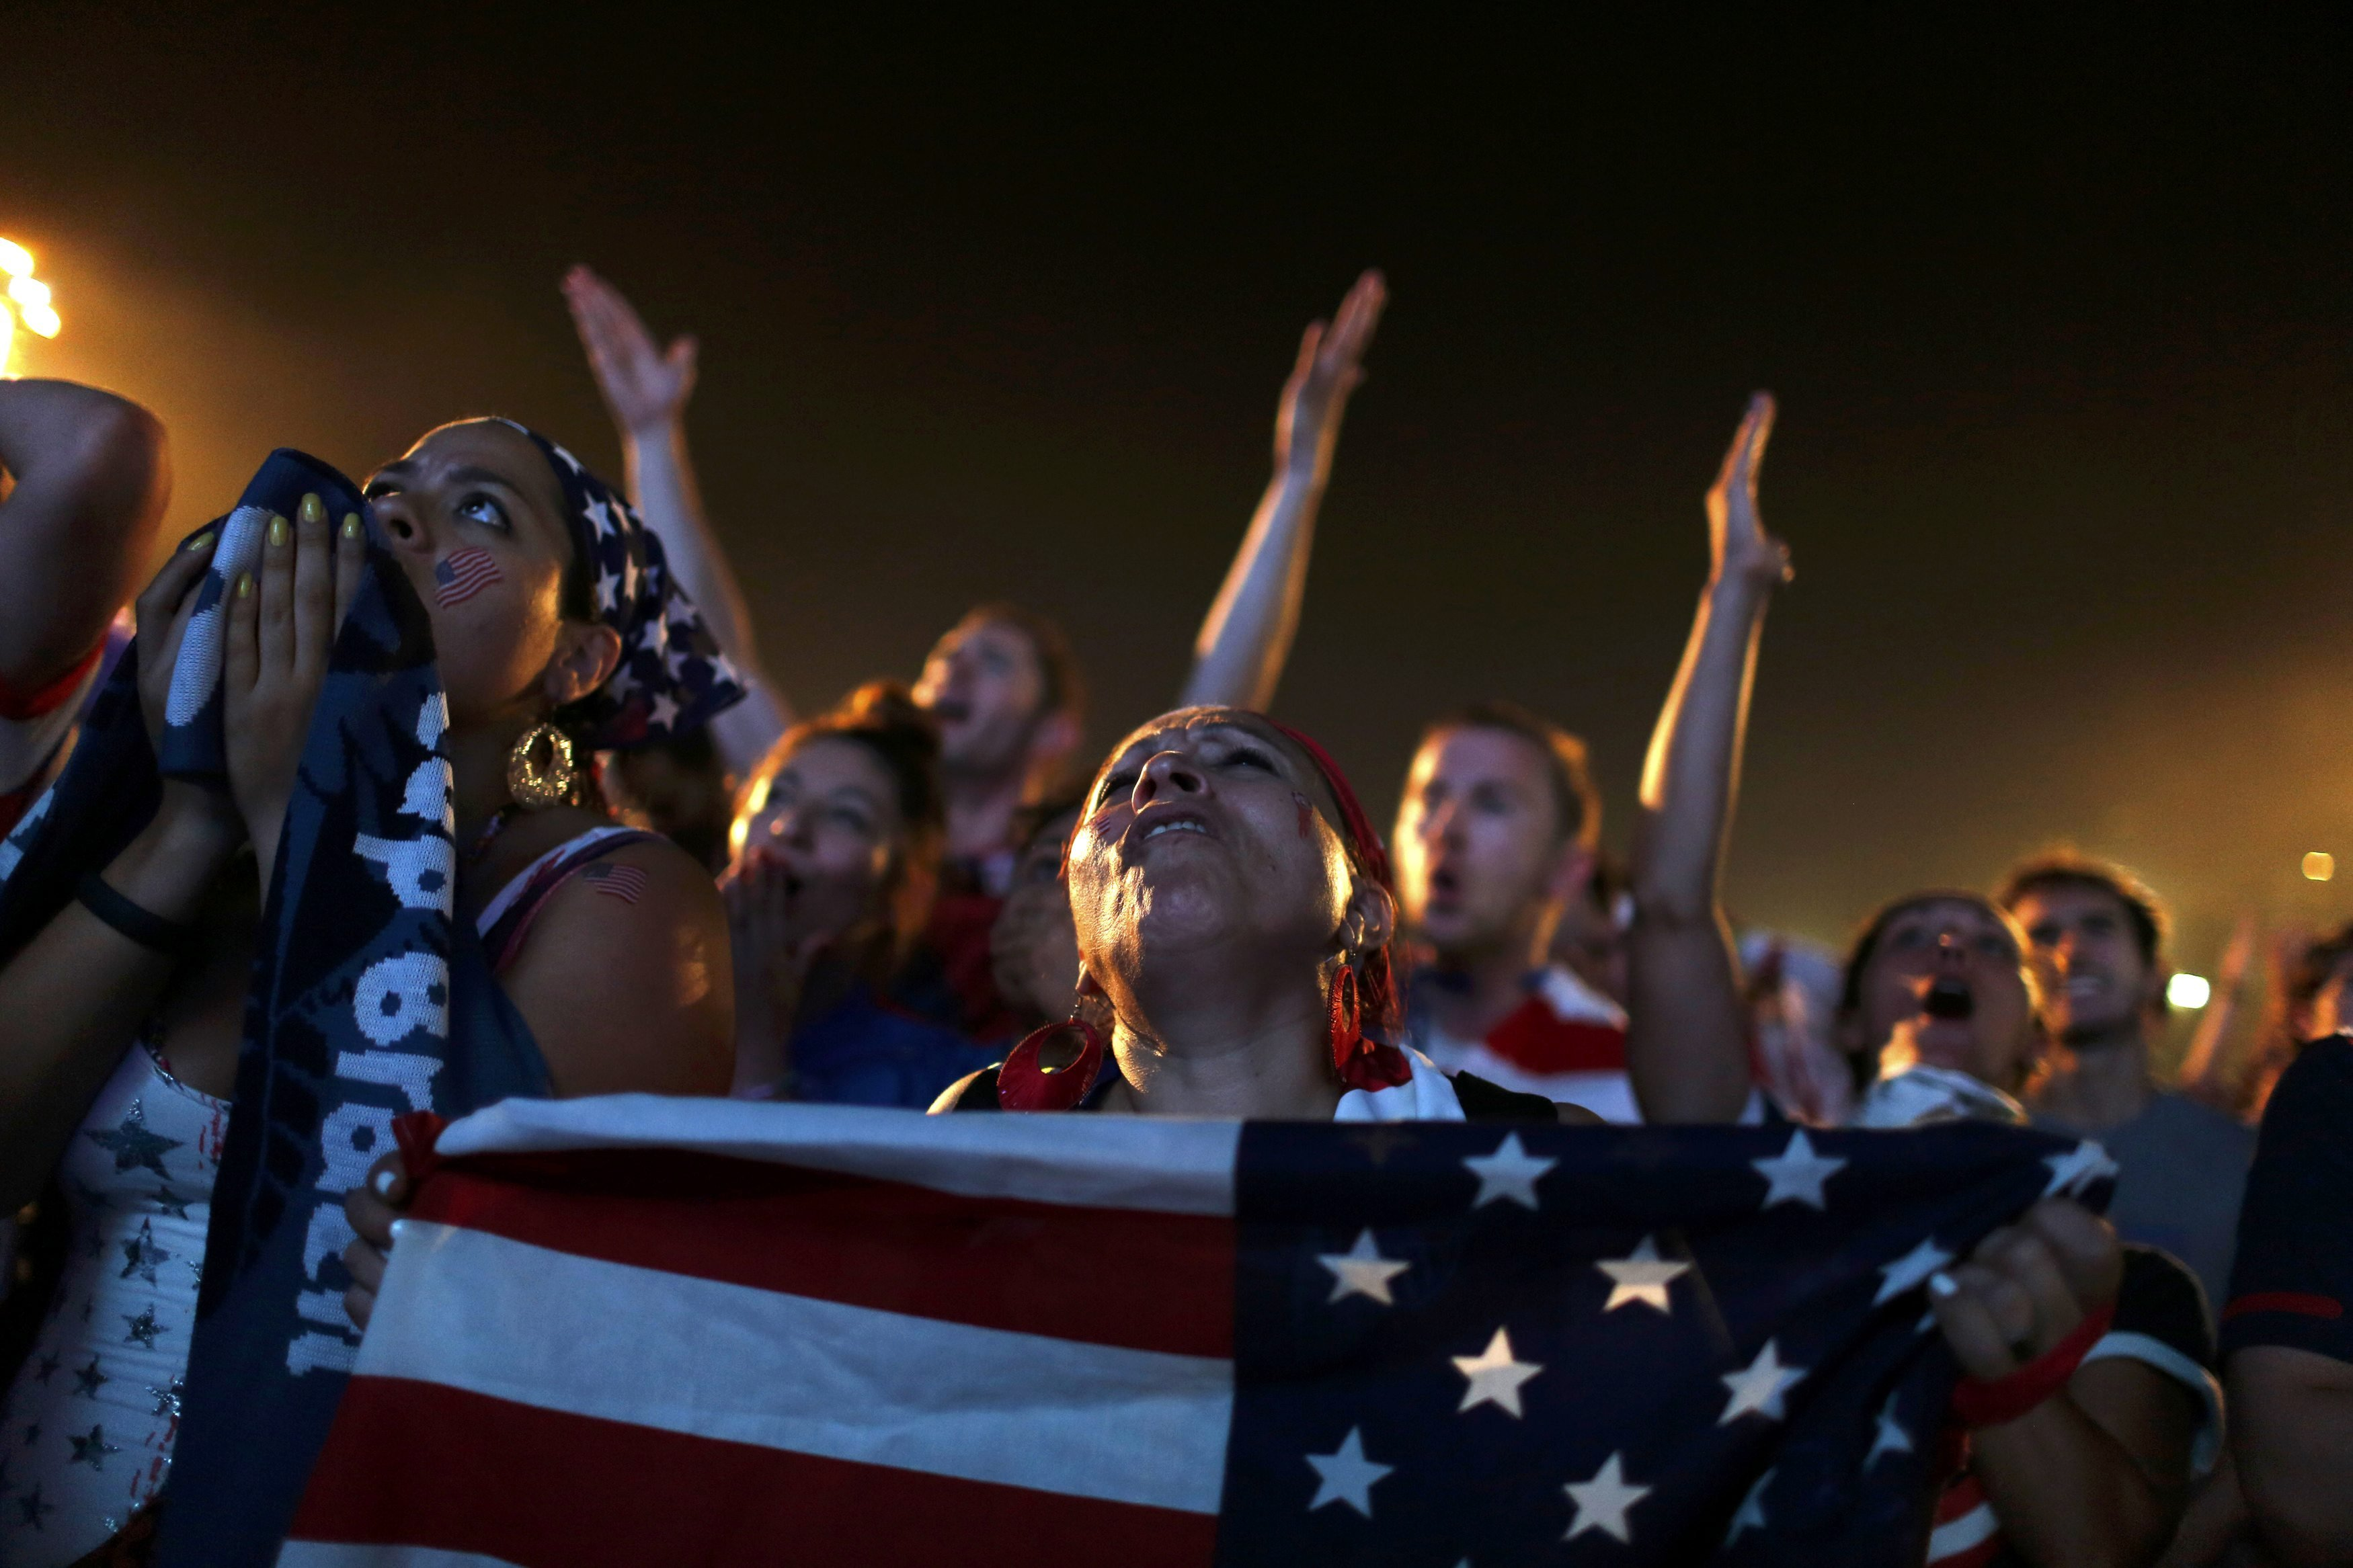 U.S. soccer fans react as they watch the 2014 World Cup soccer match between U.S. and Ghana on a large screen at Copacabana beach in Rio de Janeiro on June 16, 2014.